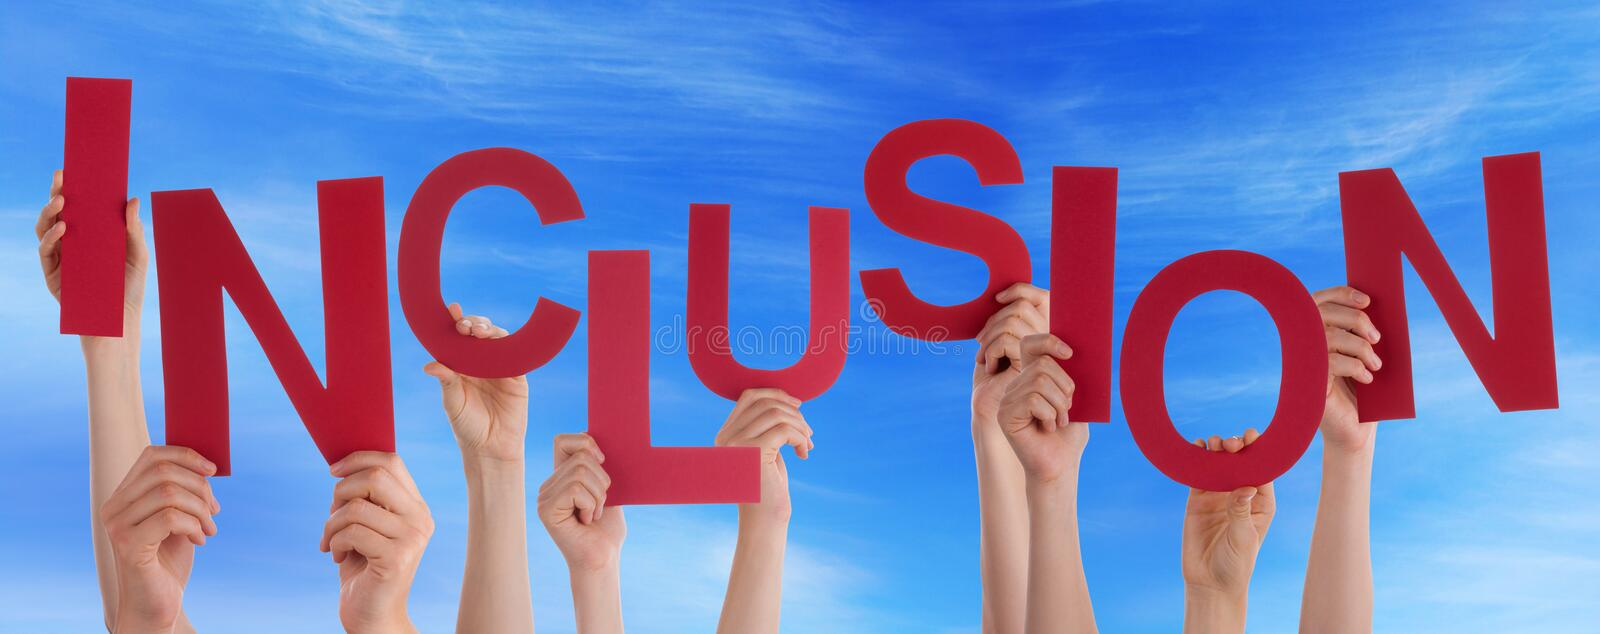 People Hands Holding Red Word Inclusion Blue Sky royalty free stock image